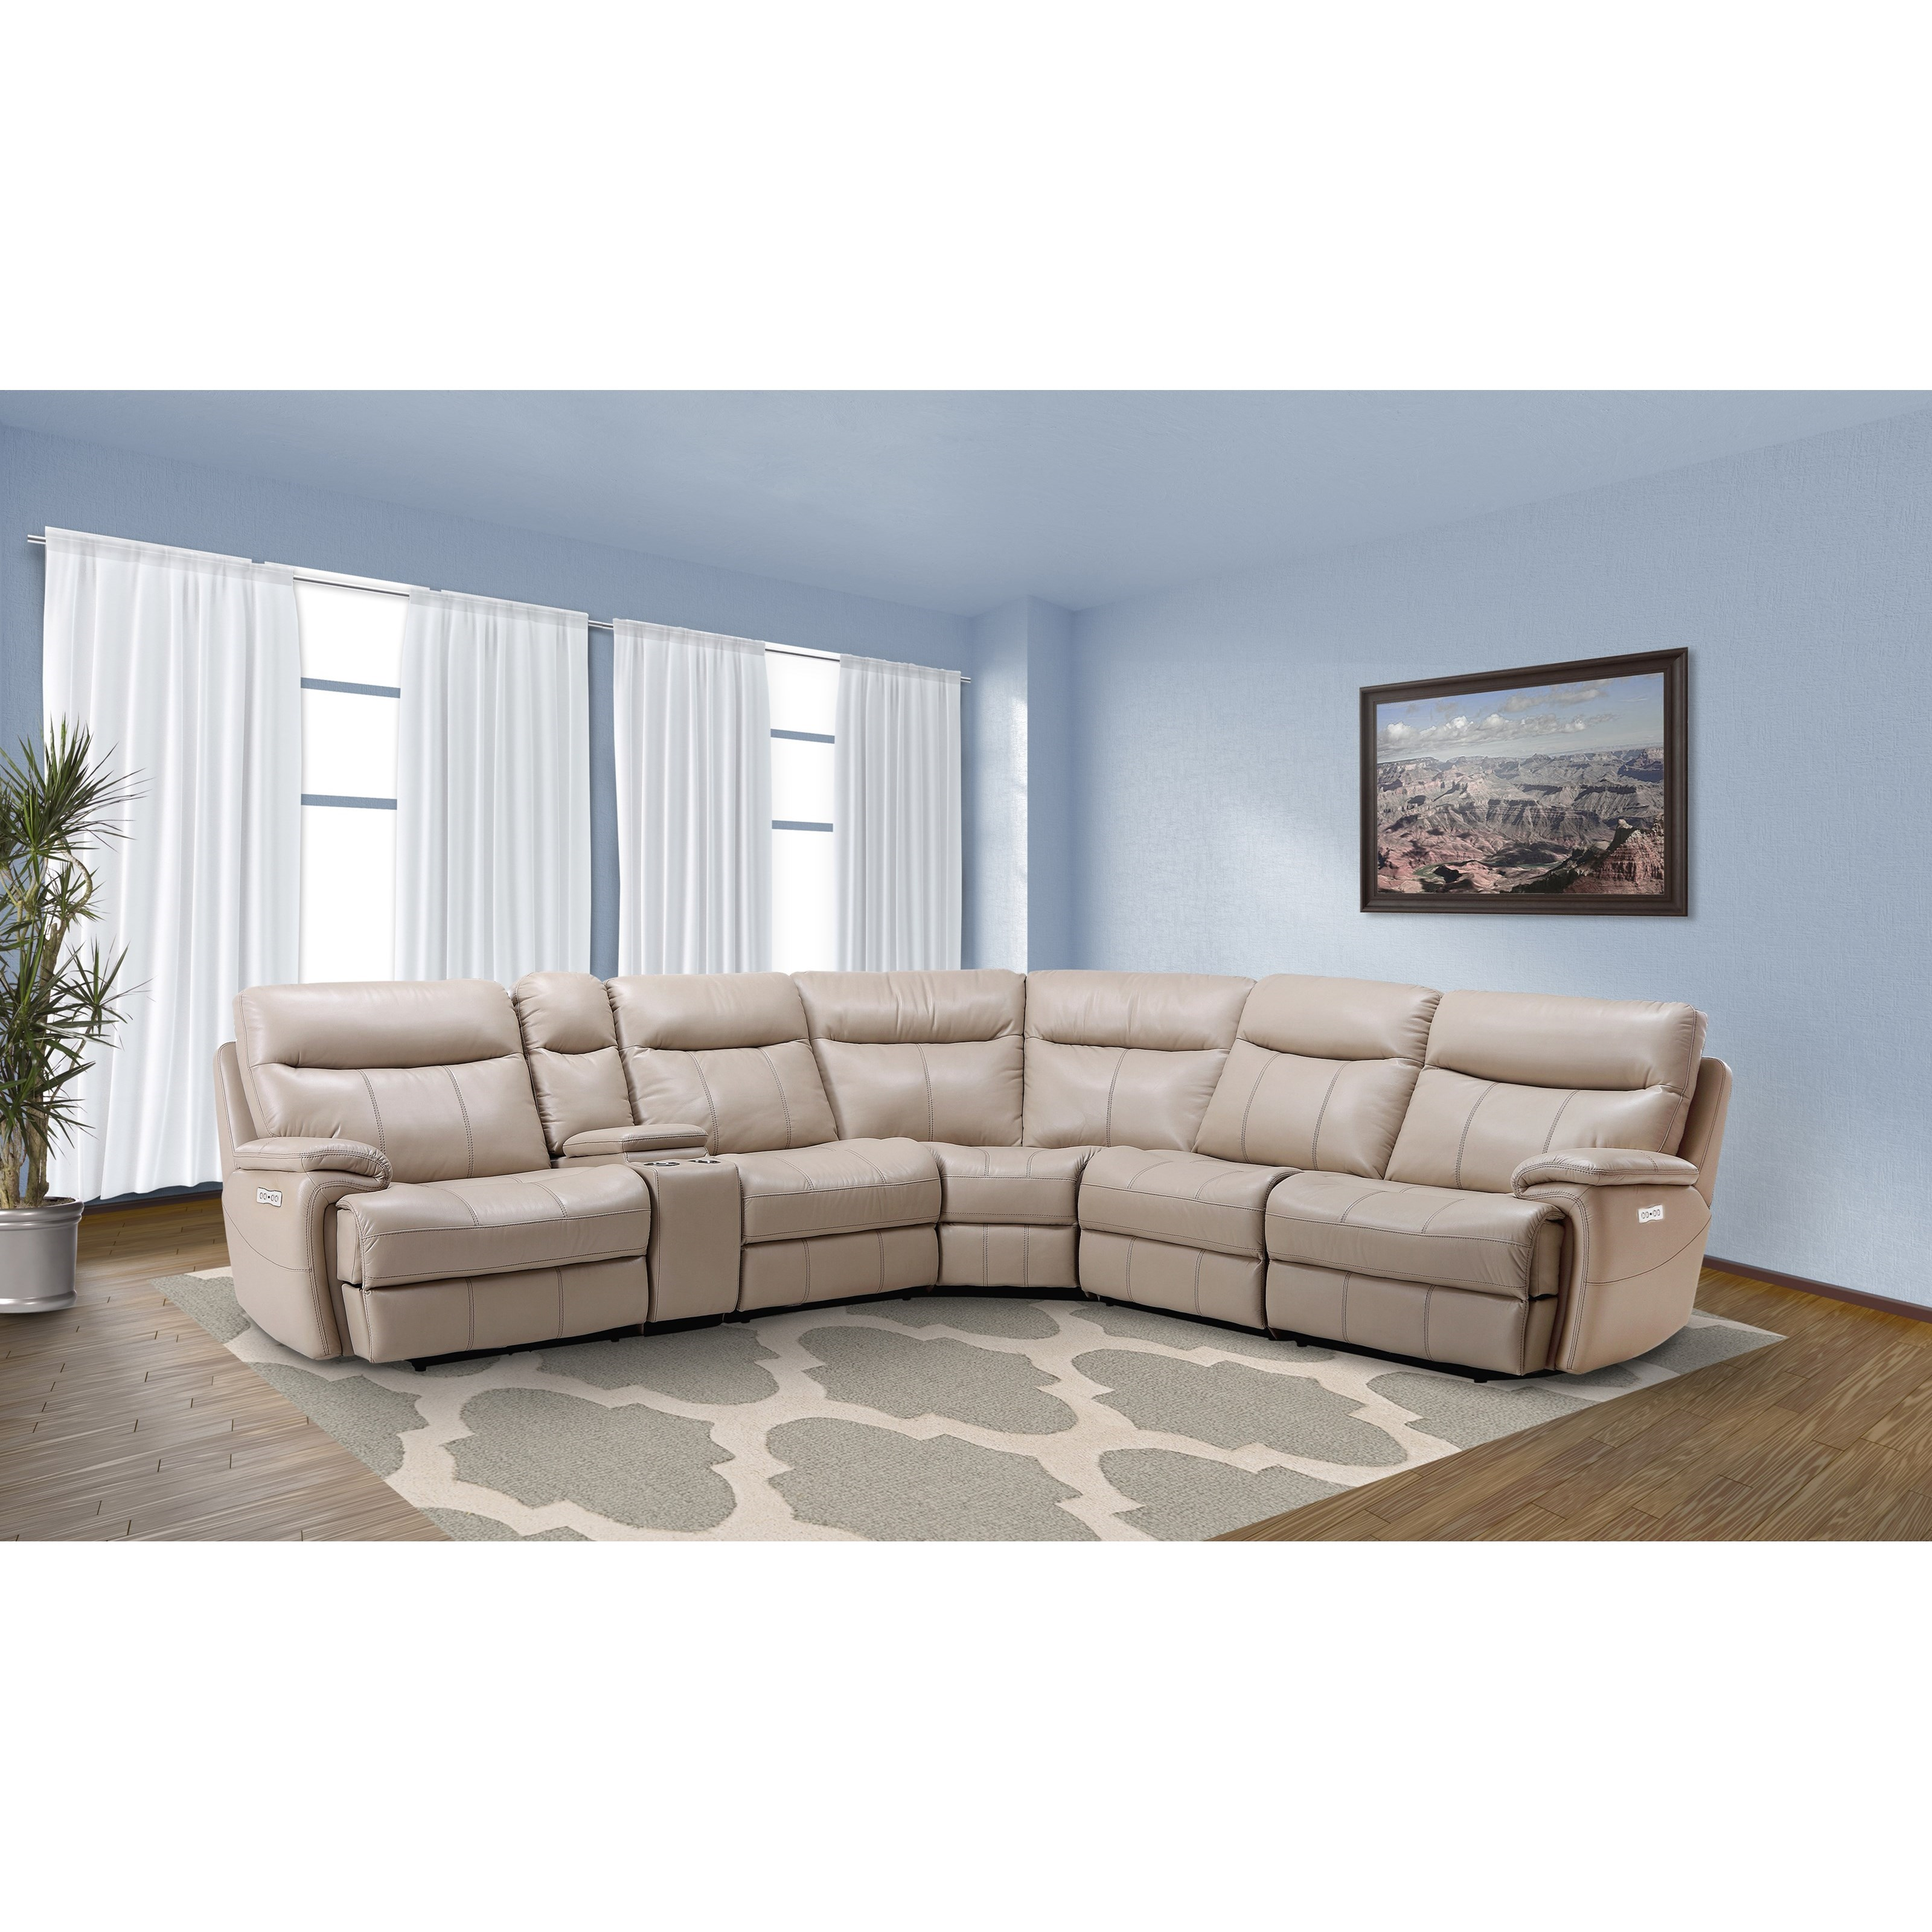 Arlo Casual Reclining Sectional Sofa with Storage Console  Rotmans  Reclining Sectional Sofas